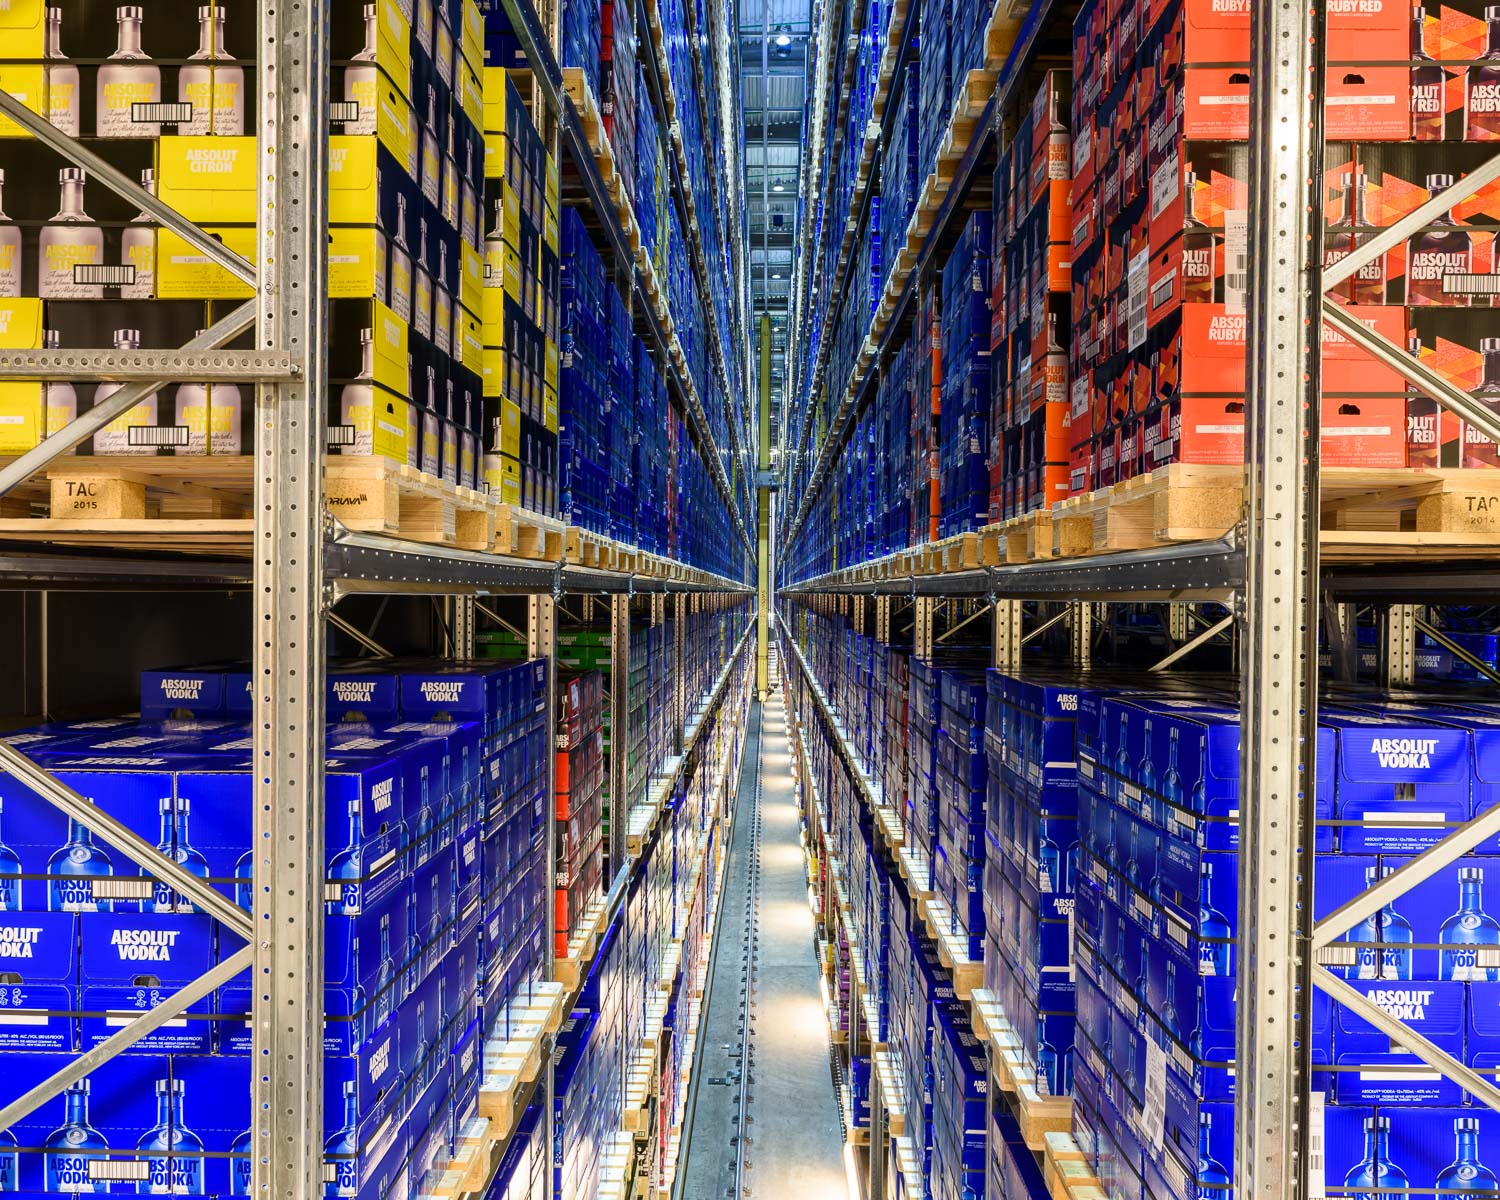 The 11 story high Absolut distribution warehouse in Åhus, Sweden, which contains up to 13 million bottles